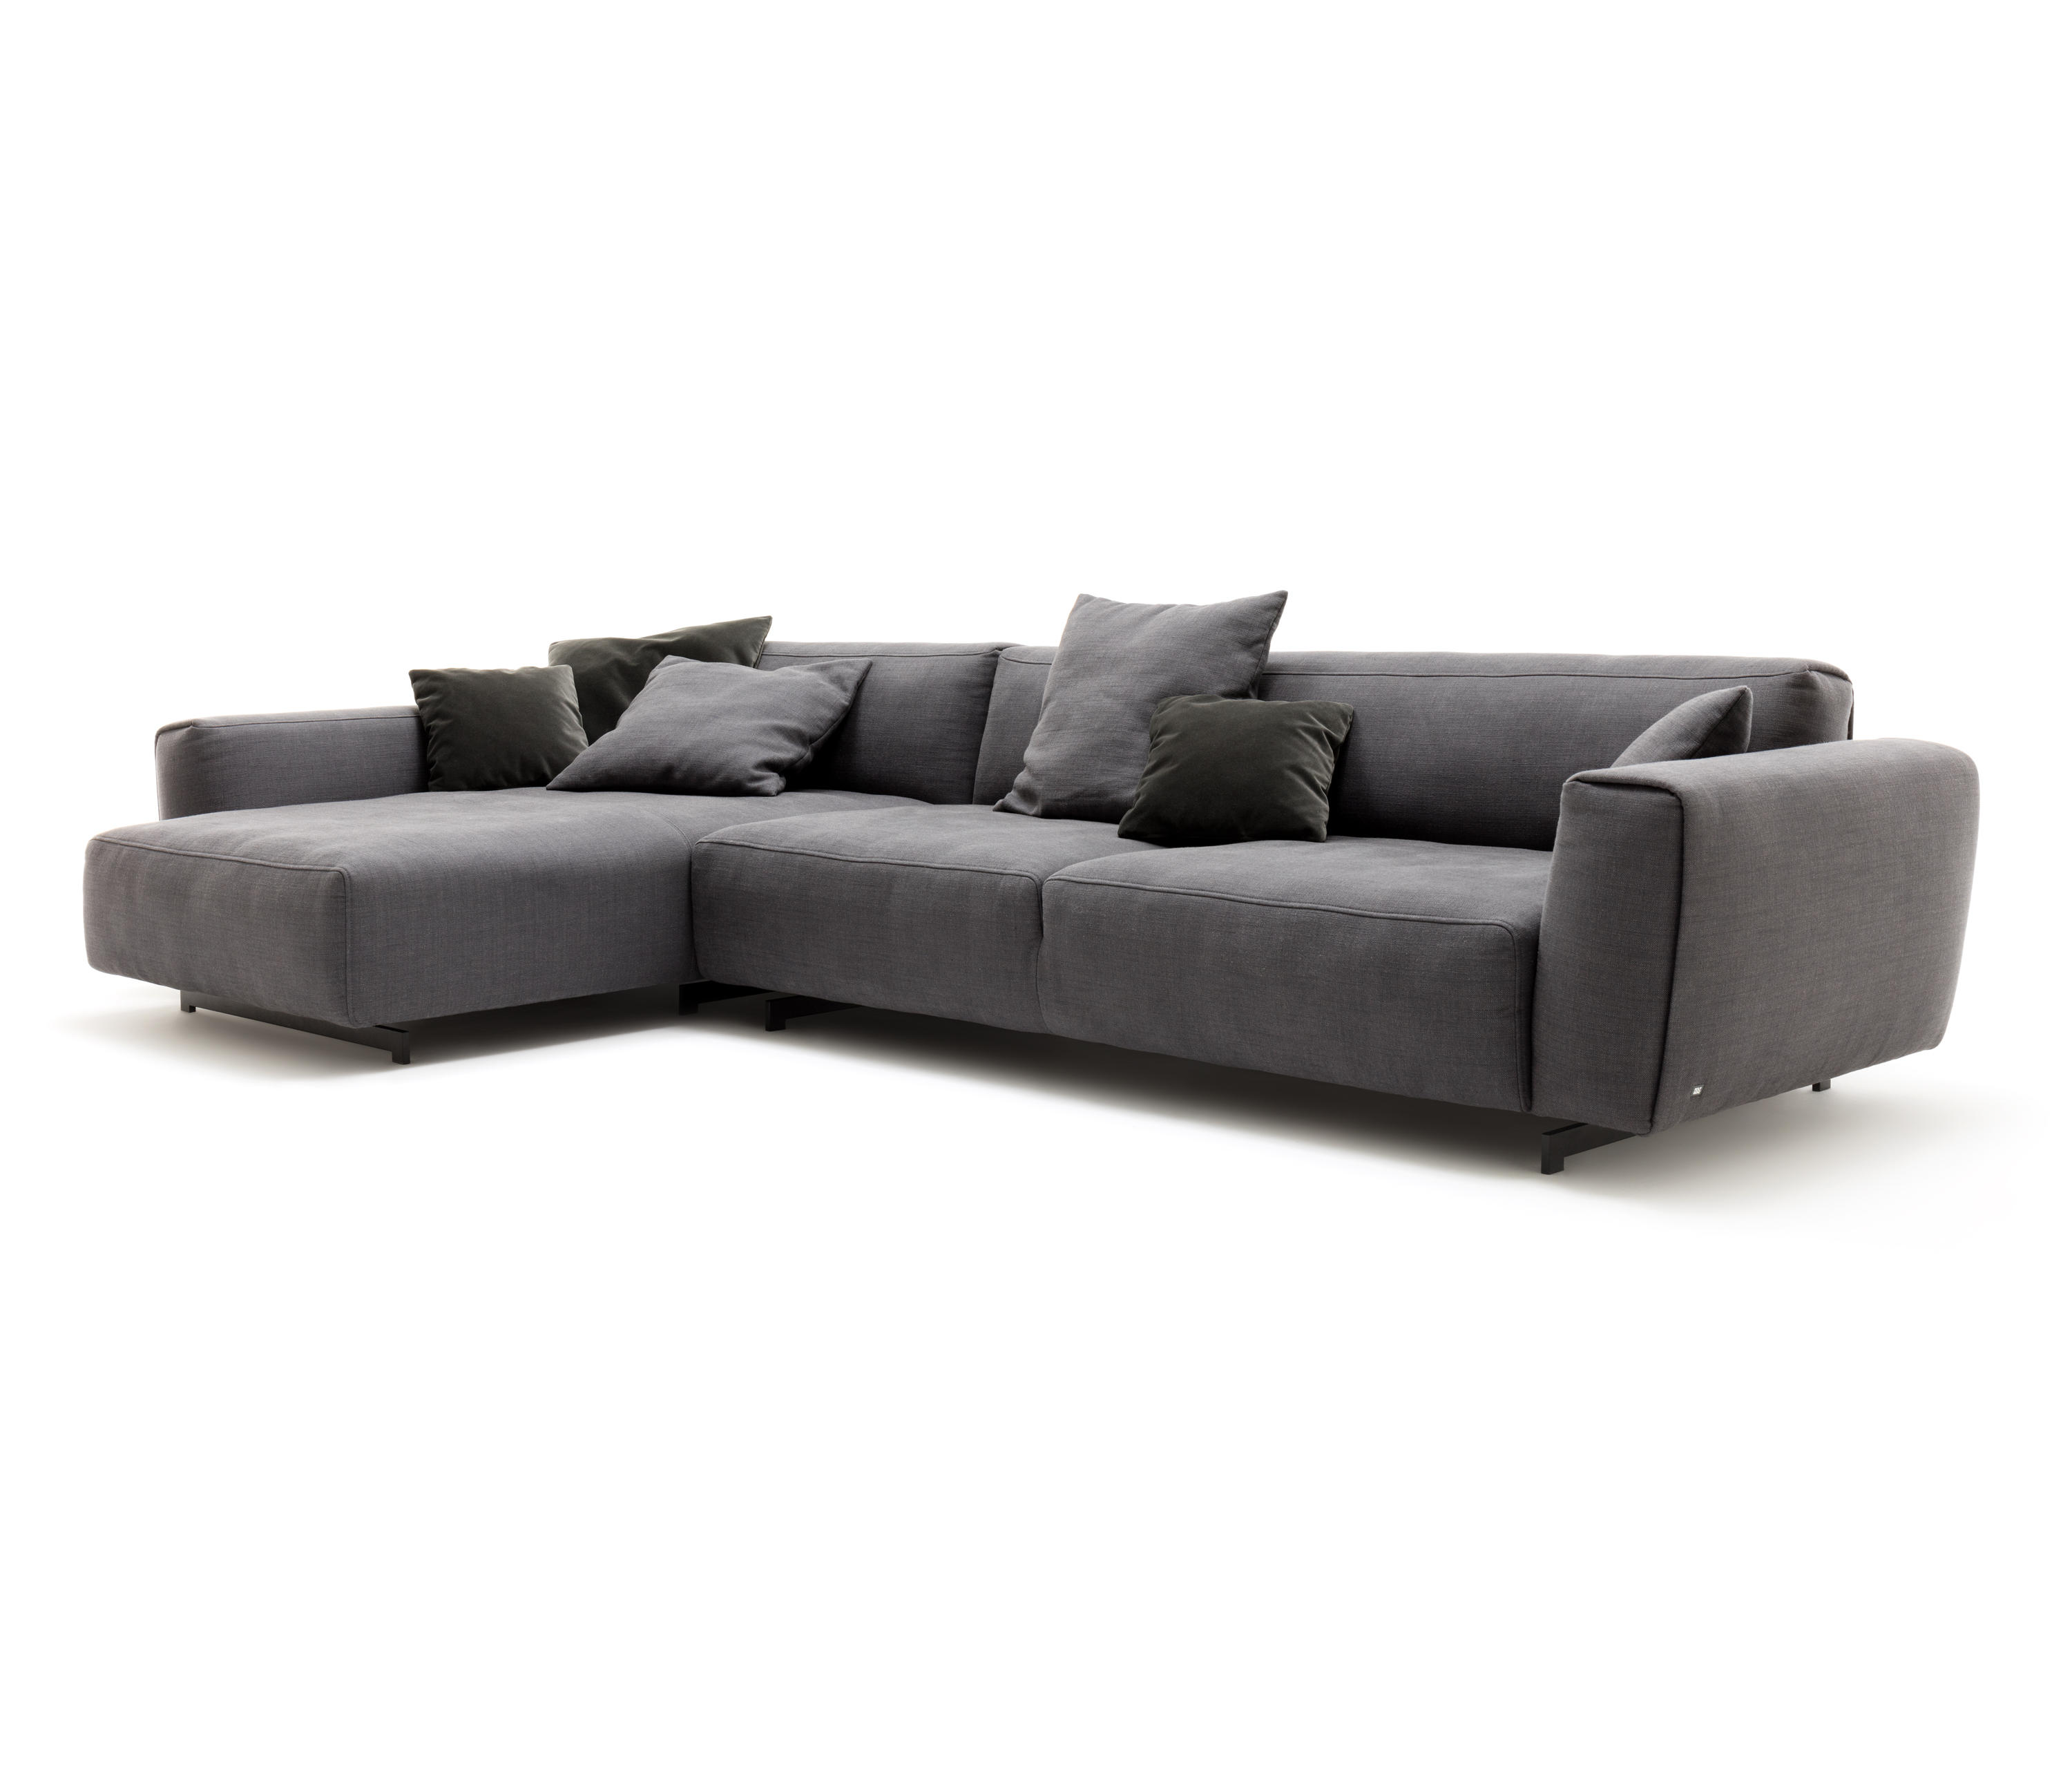 Rolf benz 550 teno sofas von rolf benz architonic for Rolf benz katalog